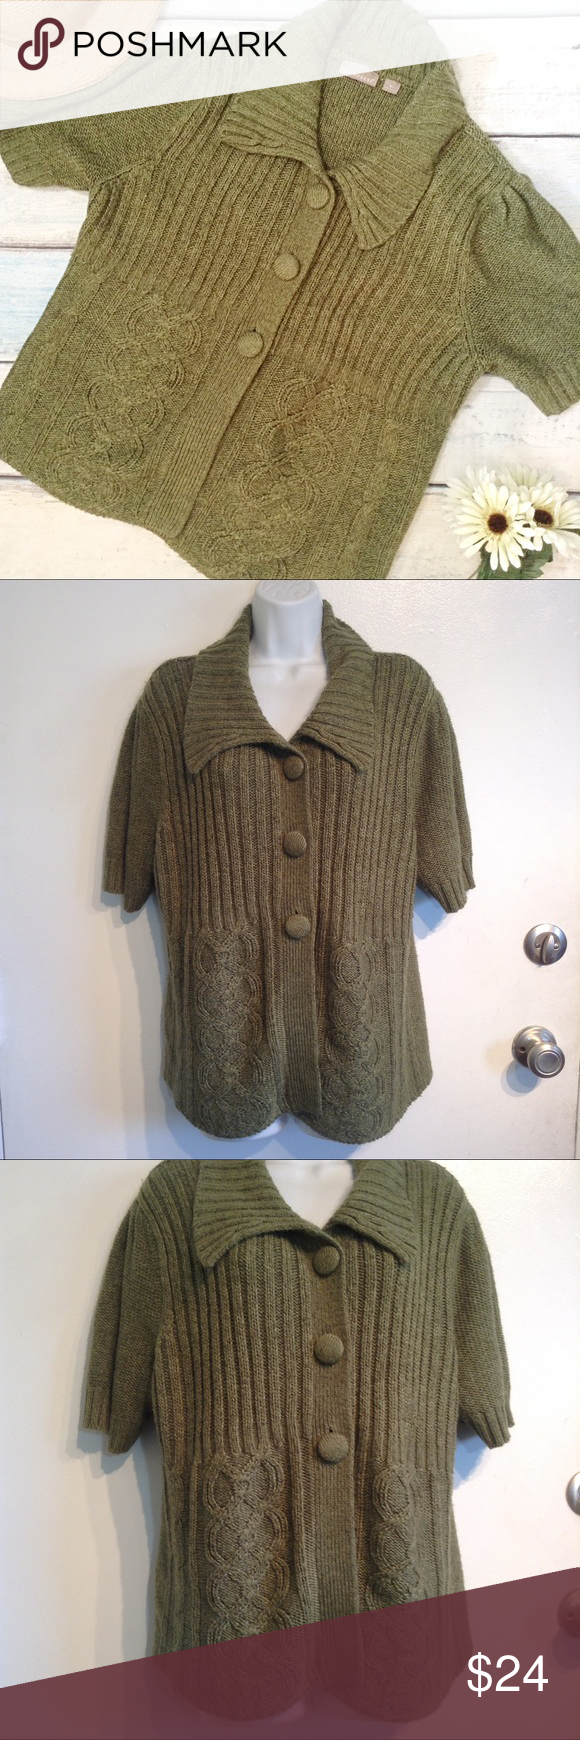 Olive Green Knit Short Sleeve Cardigan Sweater   Olive green ...